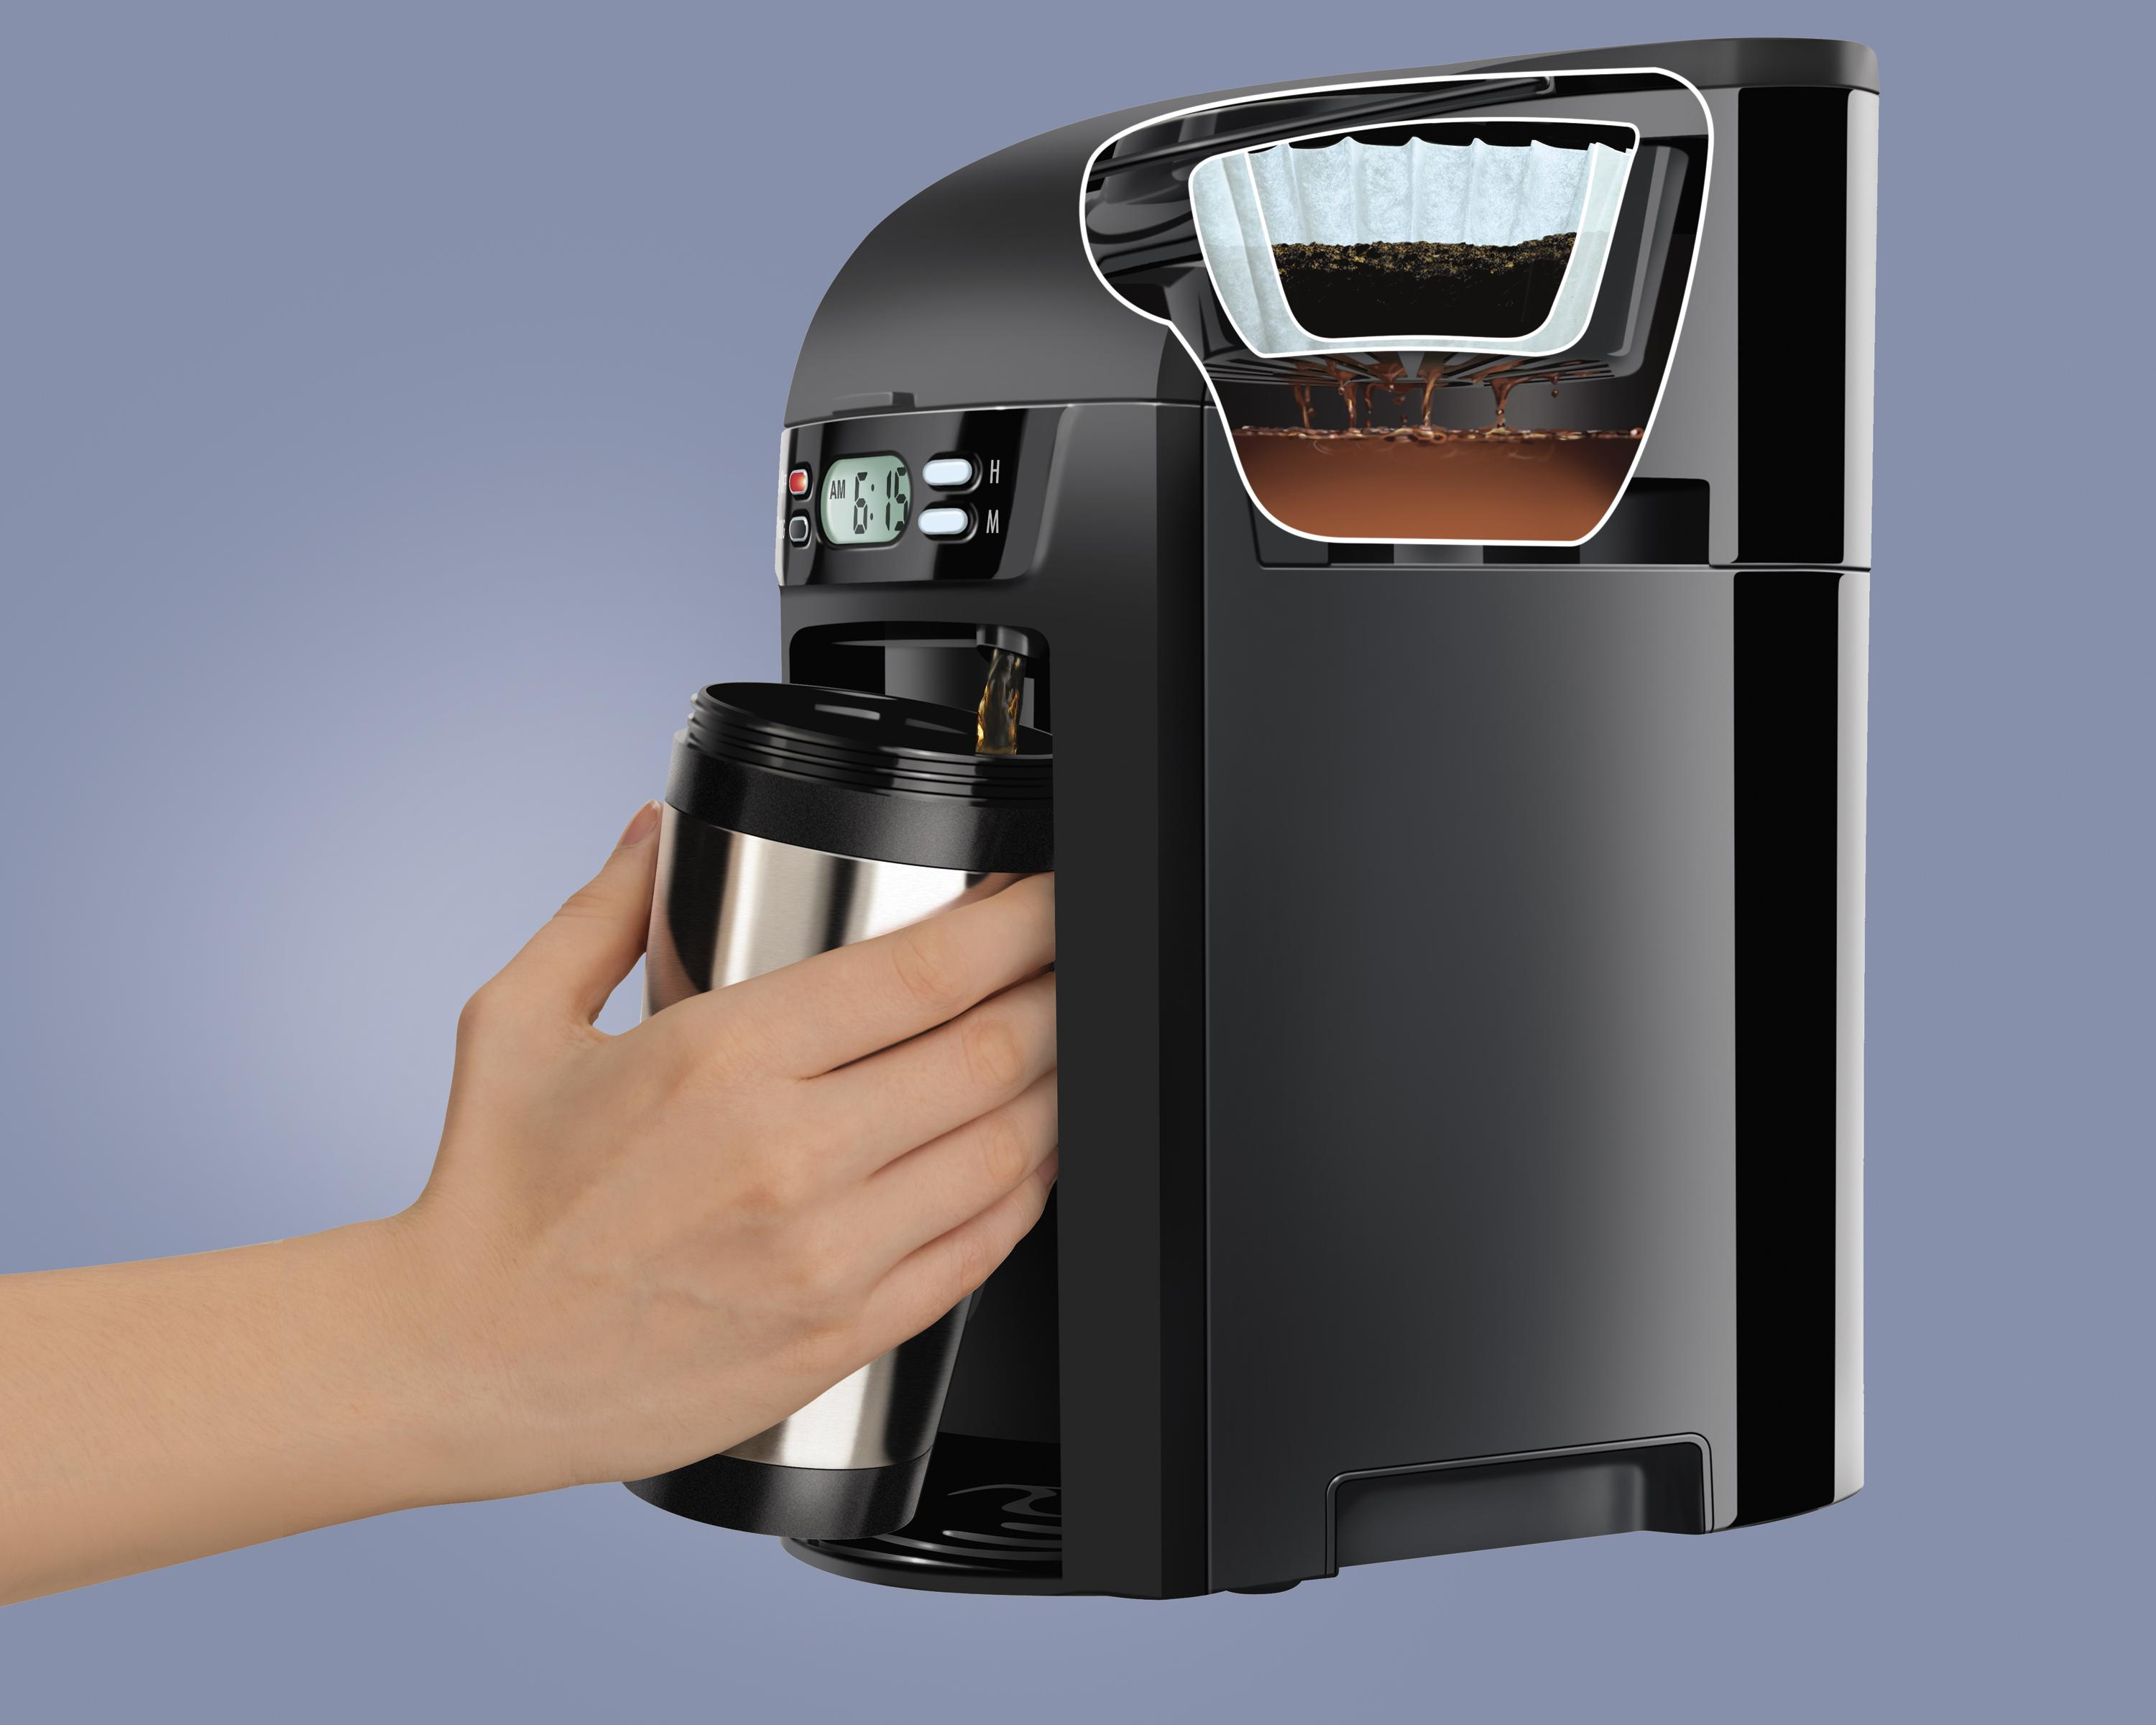 6 Cup Coffee Maker Programmable : Amazon.com: Hamilton Beach 6-Cup Coffee Maker, Programmable Brewstation Dispensing Coffee ...